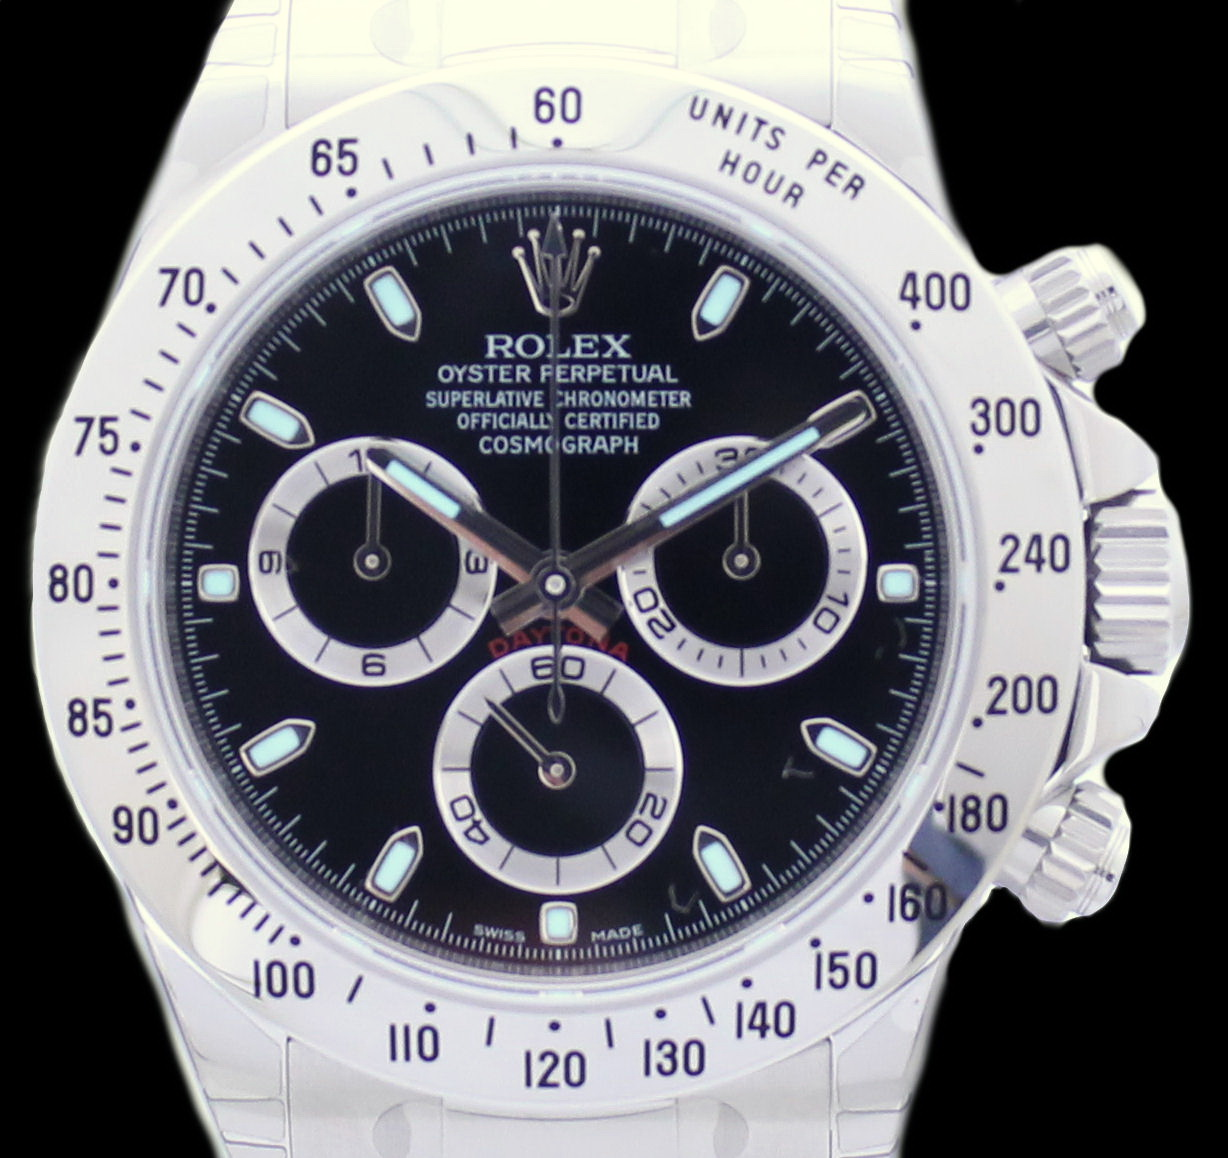 rolex daytona stahl herren cosmograph ref 116520 von 2016 neu full set ebay. Black Bedroom Furniture Sets. Home Design Ideas